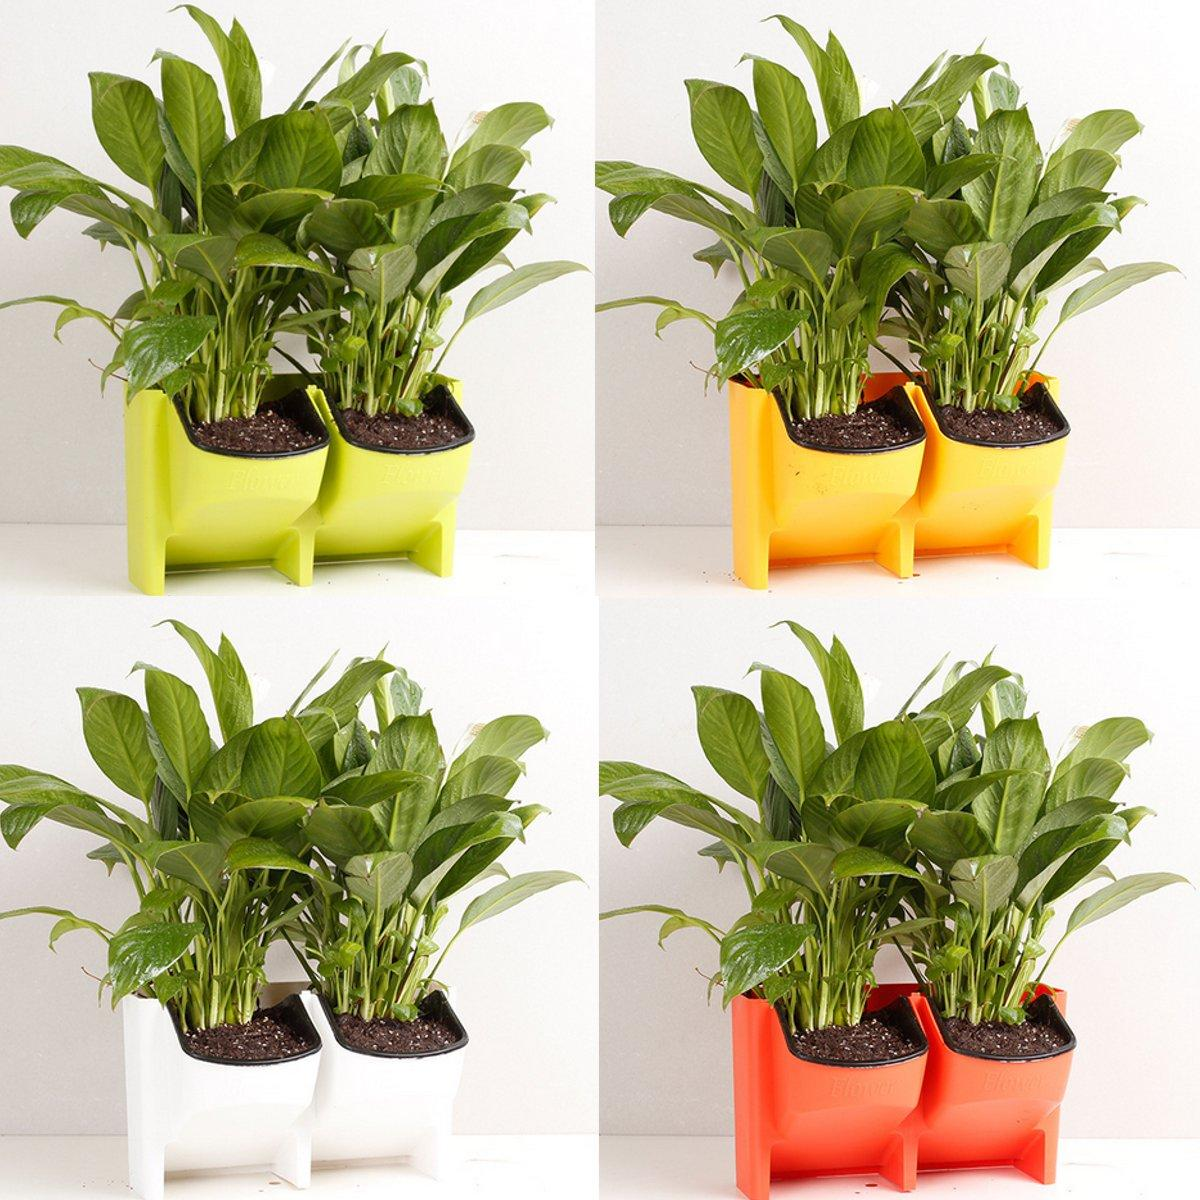 Topf Blumen 2 Pocket Vertical Wall Planter Self Watering Hanging Blumen Topf Garten Dekoration